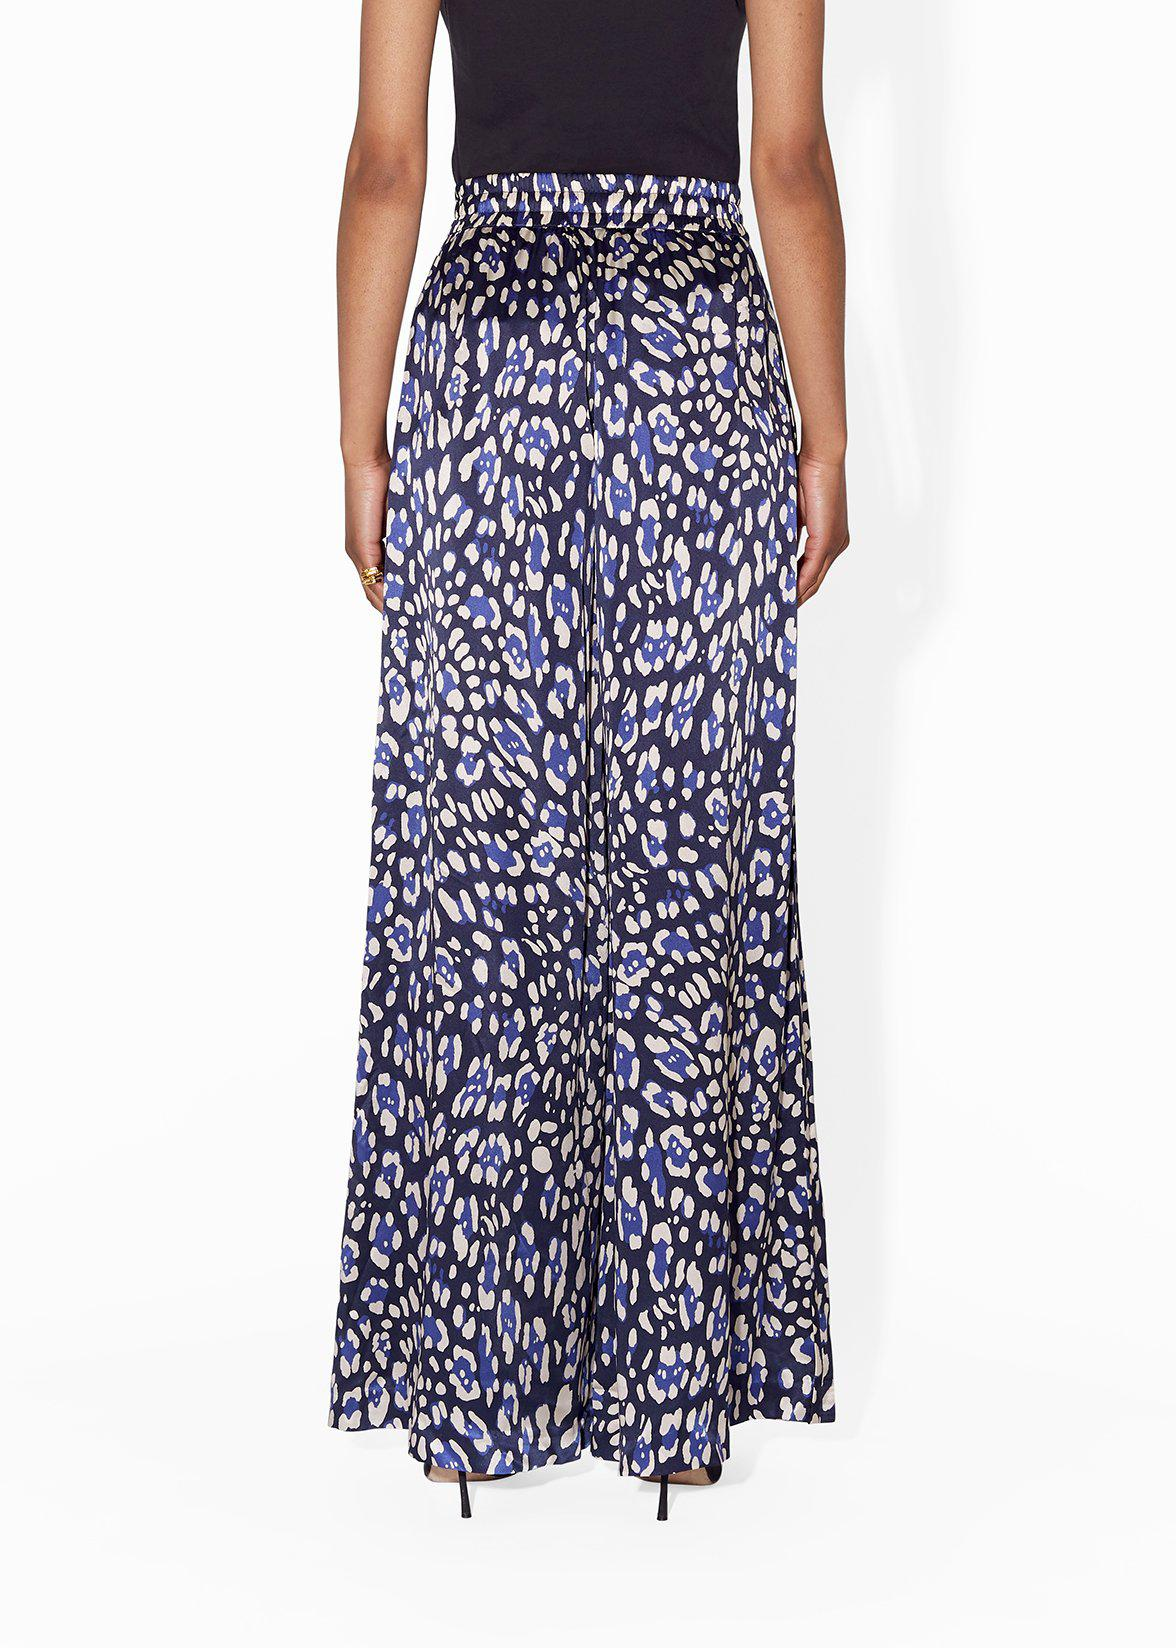 WIDE-LEG PANT IN PRINTED CHARMEUSE 4